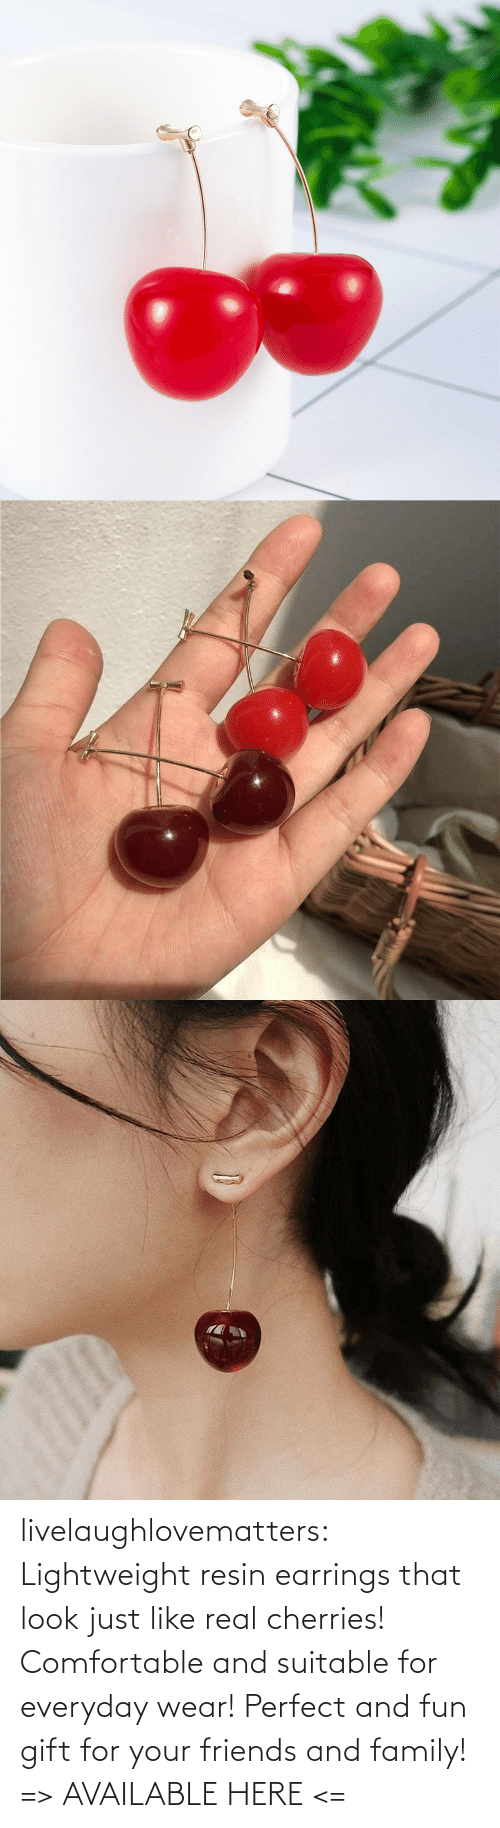 Friends And Family: livelaughlovematters: Lightweight resin earrings that look just like real cherries! Comfortable and suitable for everyday wear! Perfect and fun gift for your friends and family! => AVAILABLE HERE <=